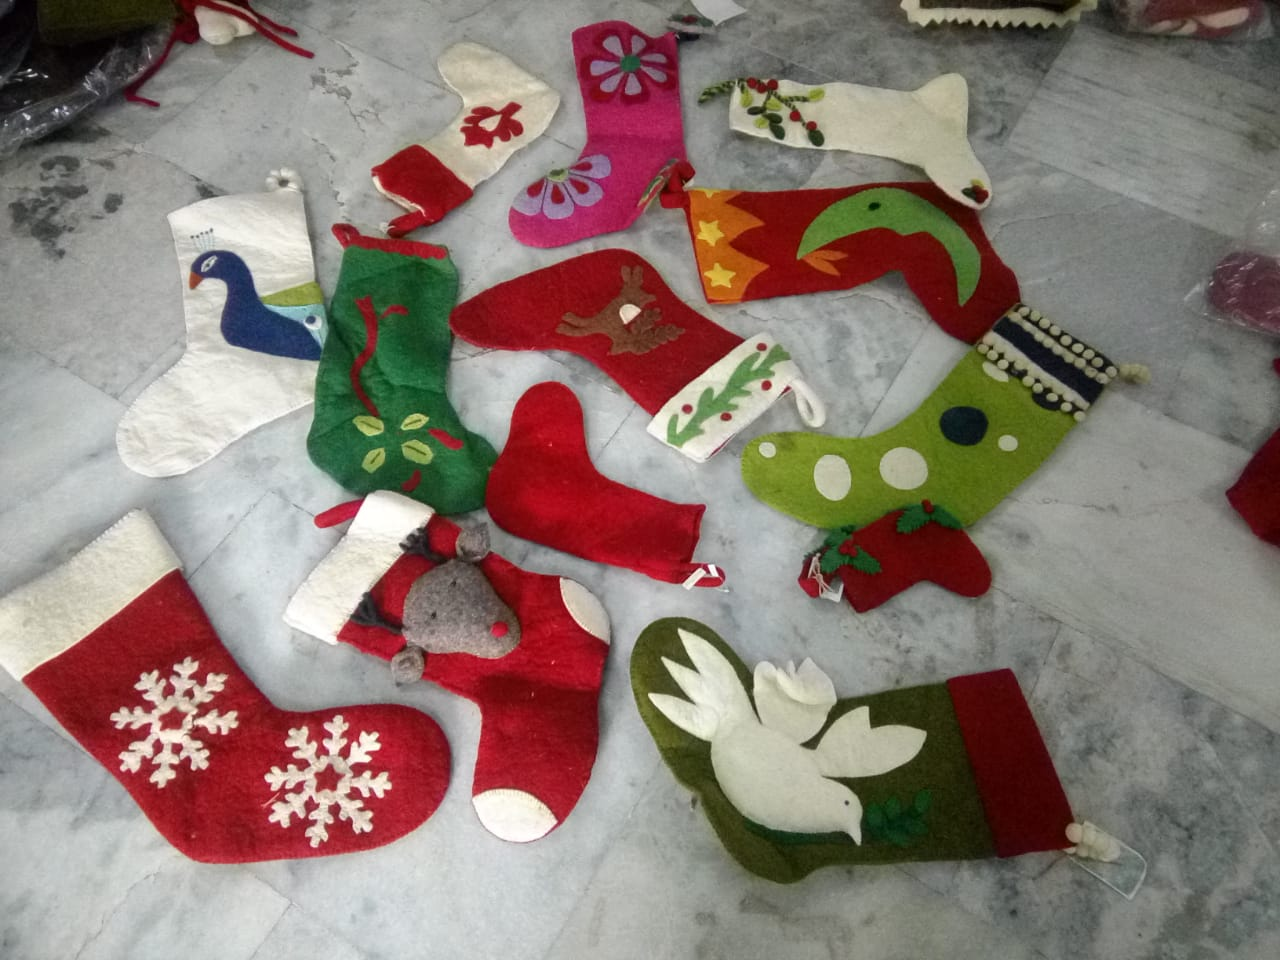 Christmas decorations, supplies